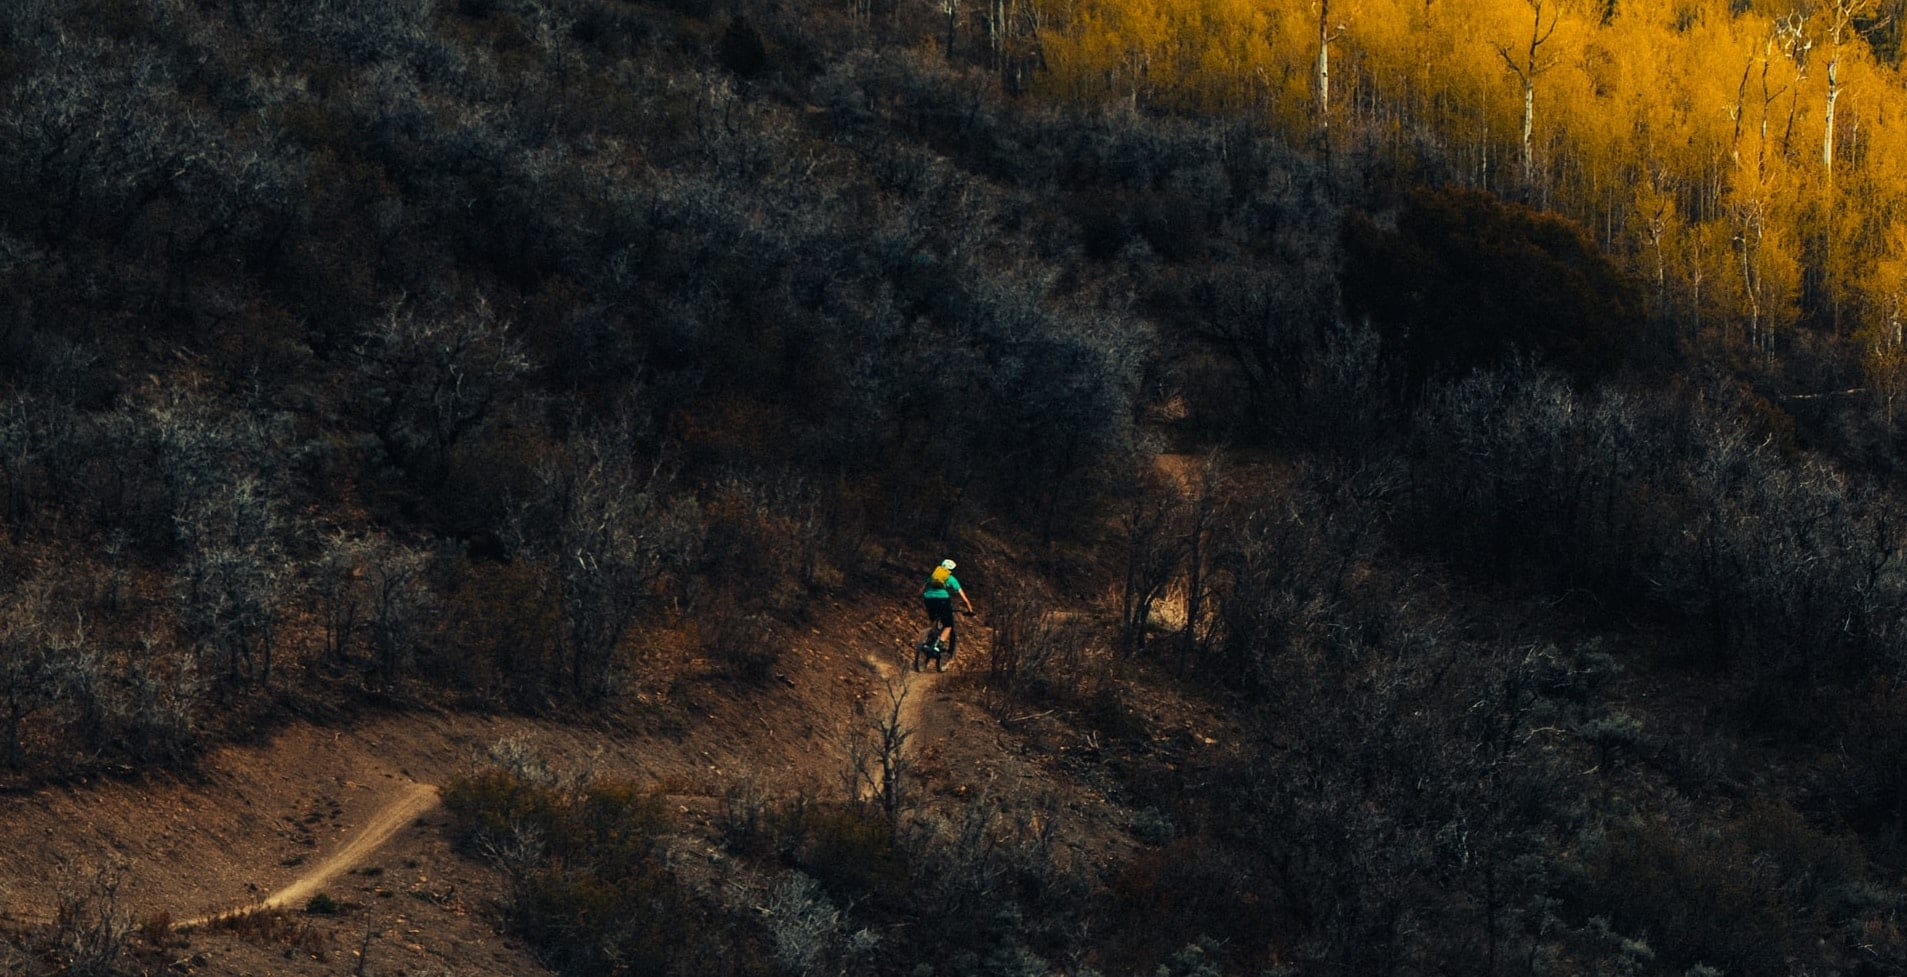 Mountain biker on a trail.